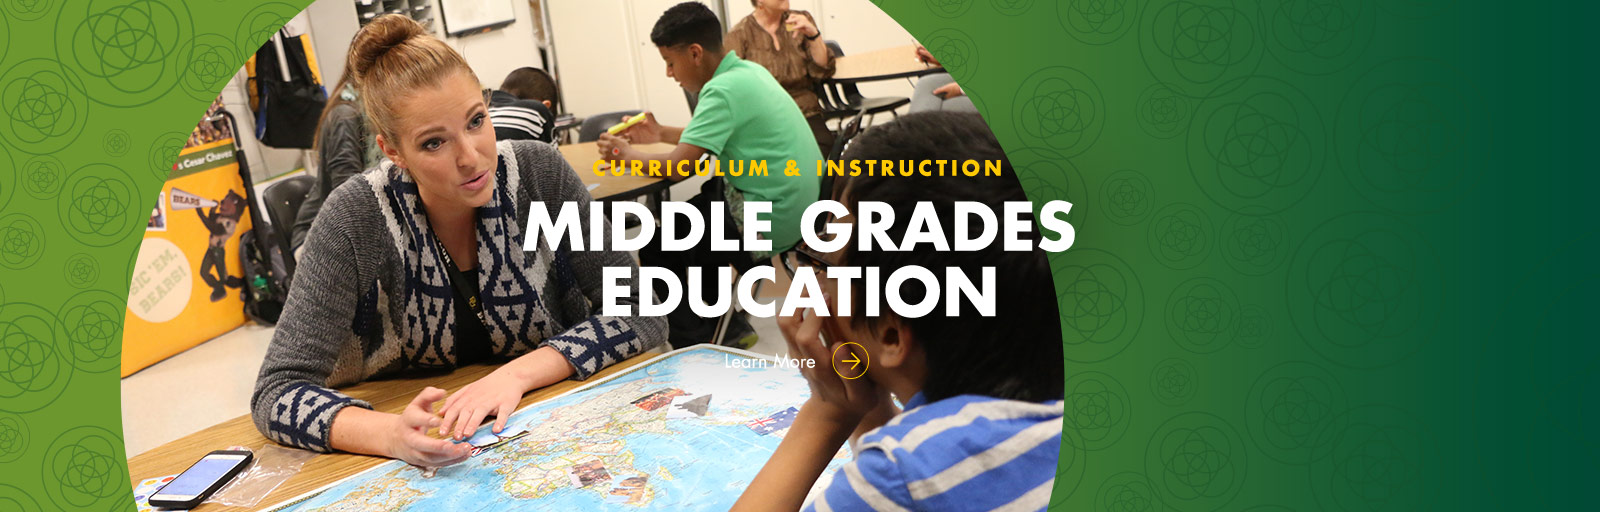 soe-mc_ci-Middle-Grades